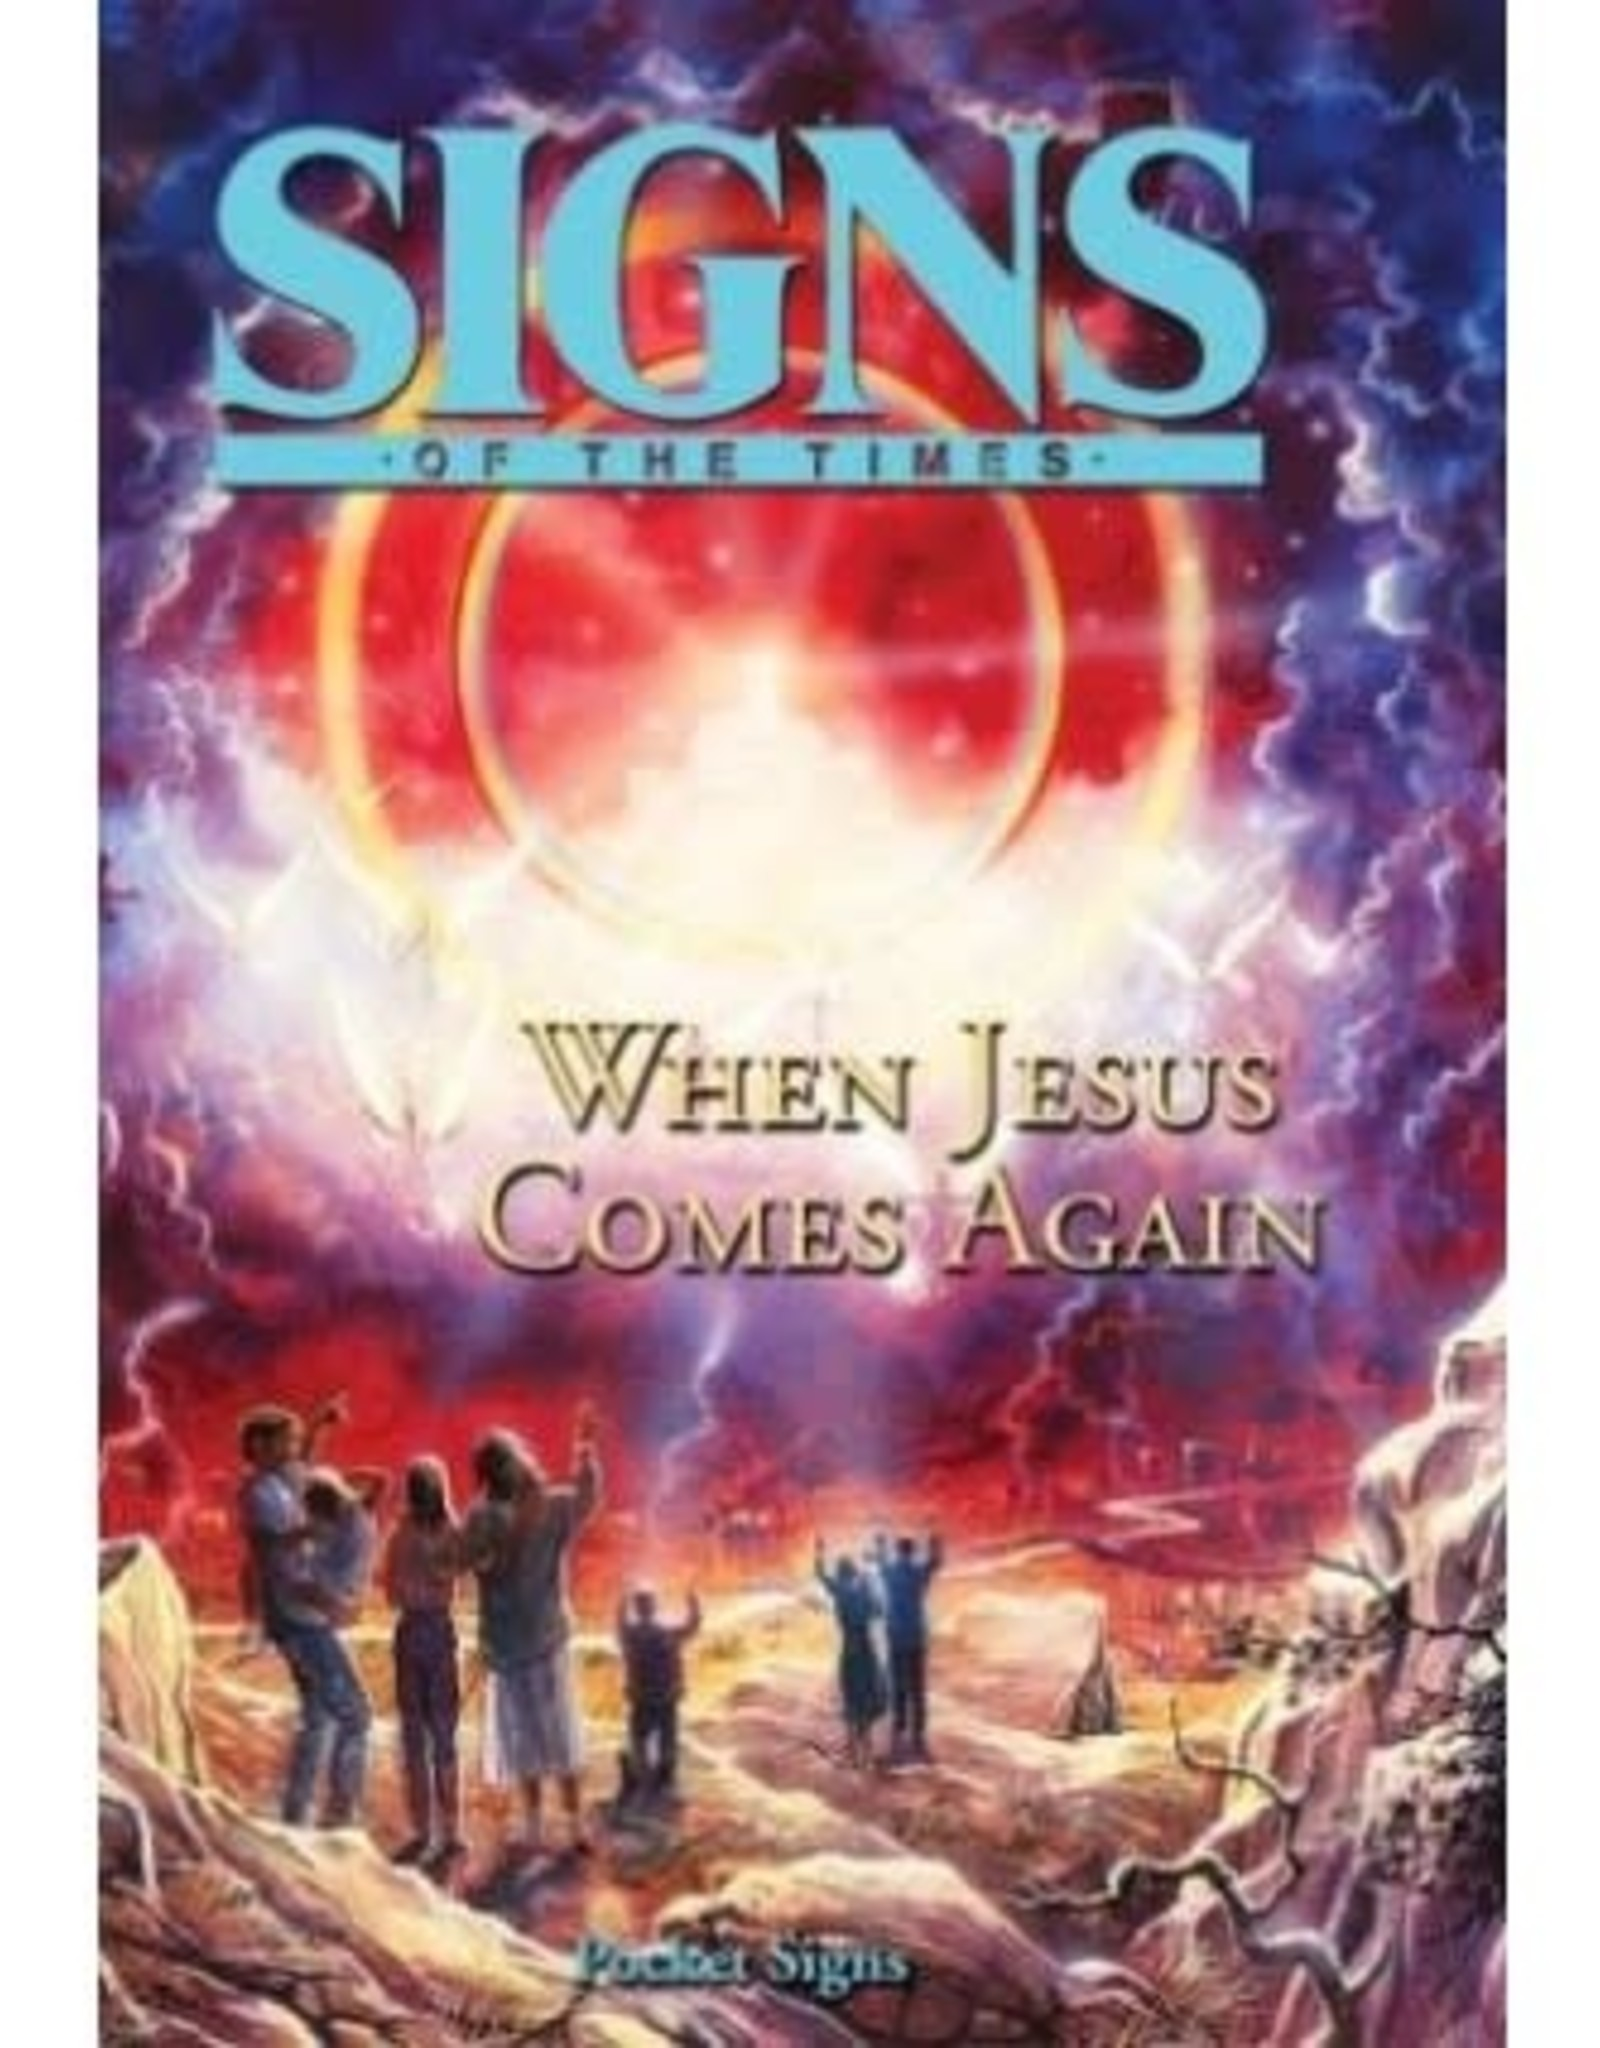 Signs When Jesus comes again